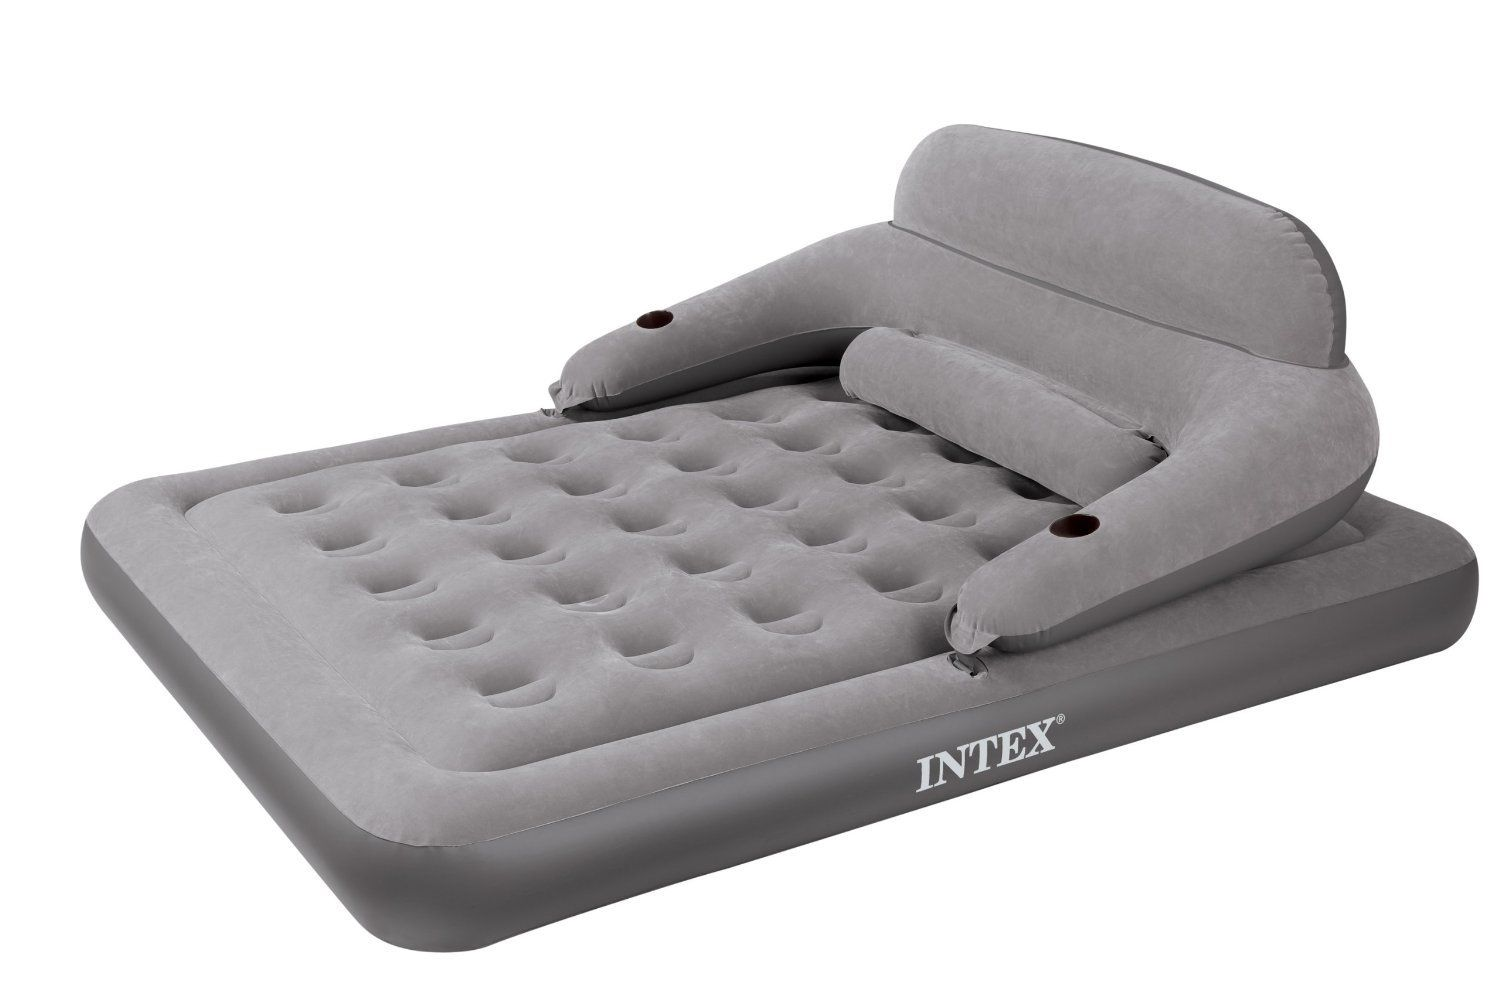 Intex Convertible Lounge Queen Bed Kit Queen Sized Airbed That